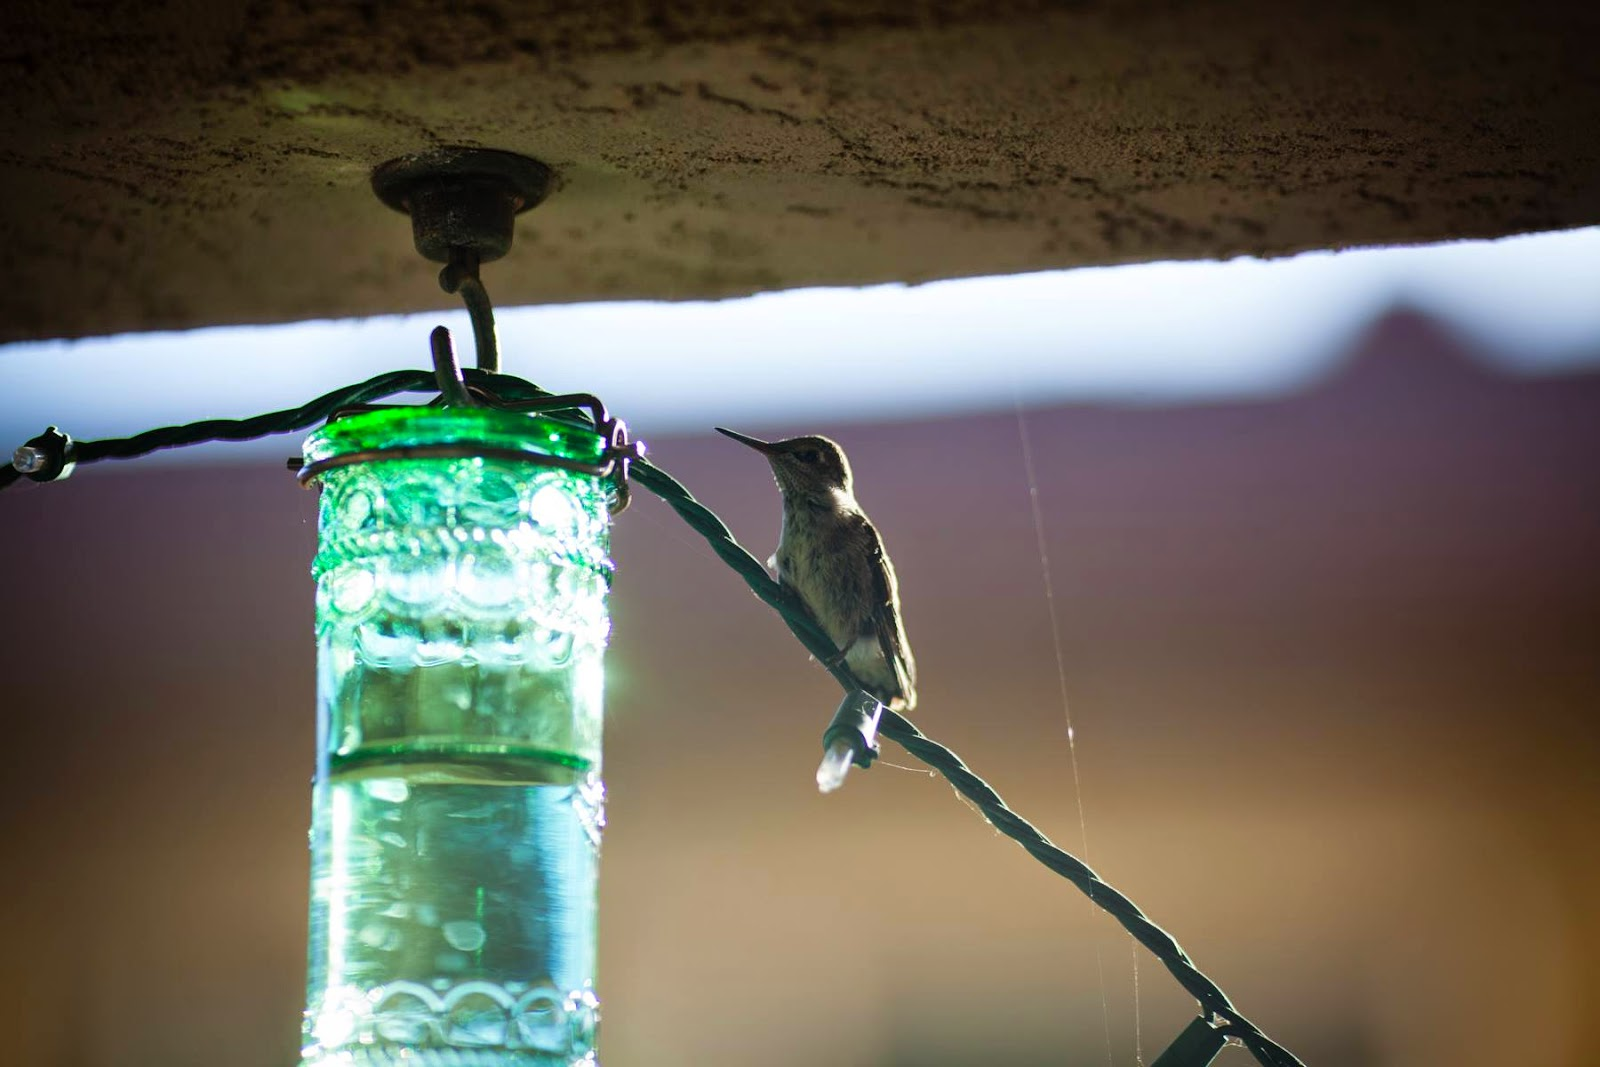 Hummingbird by a hummingbird feeder